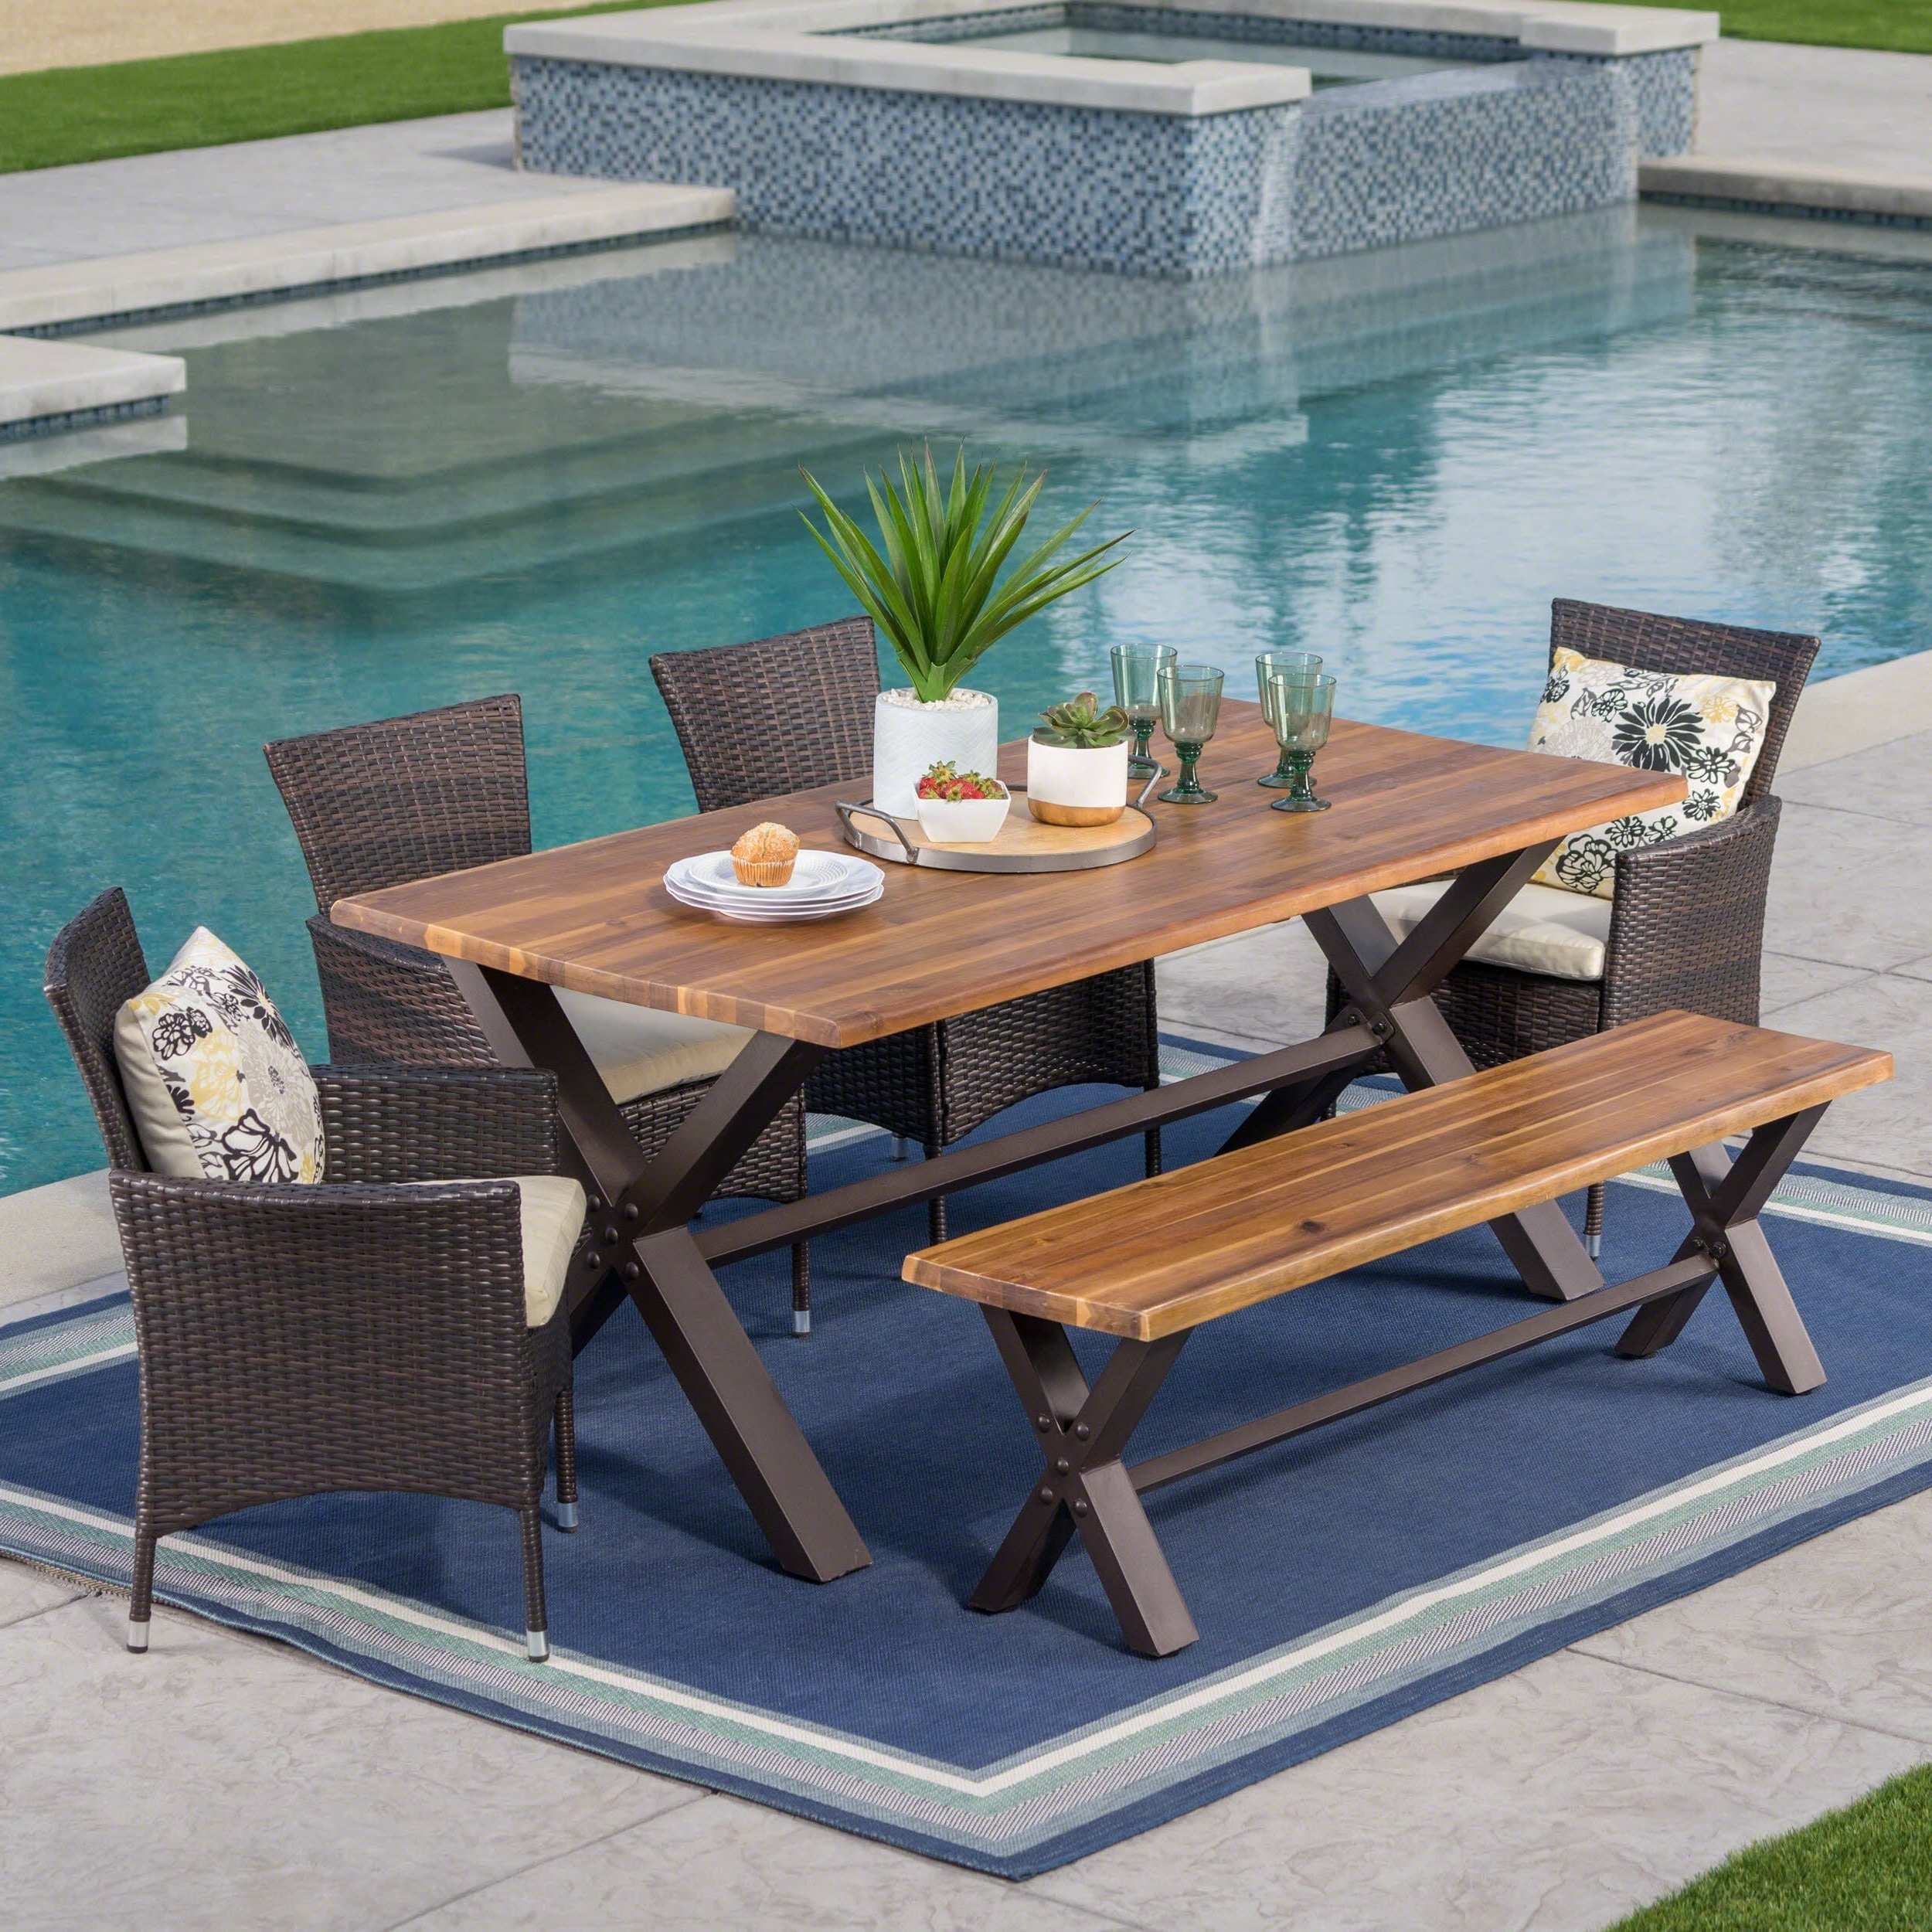 Our Best Patio Throughout Well Known Patio Conversation Sets With Dining Table (View 11 of 20)